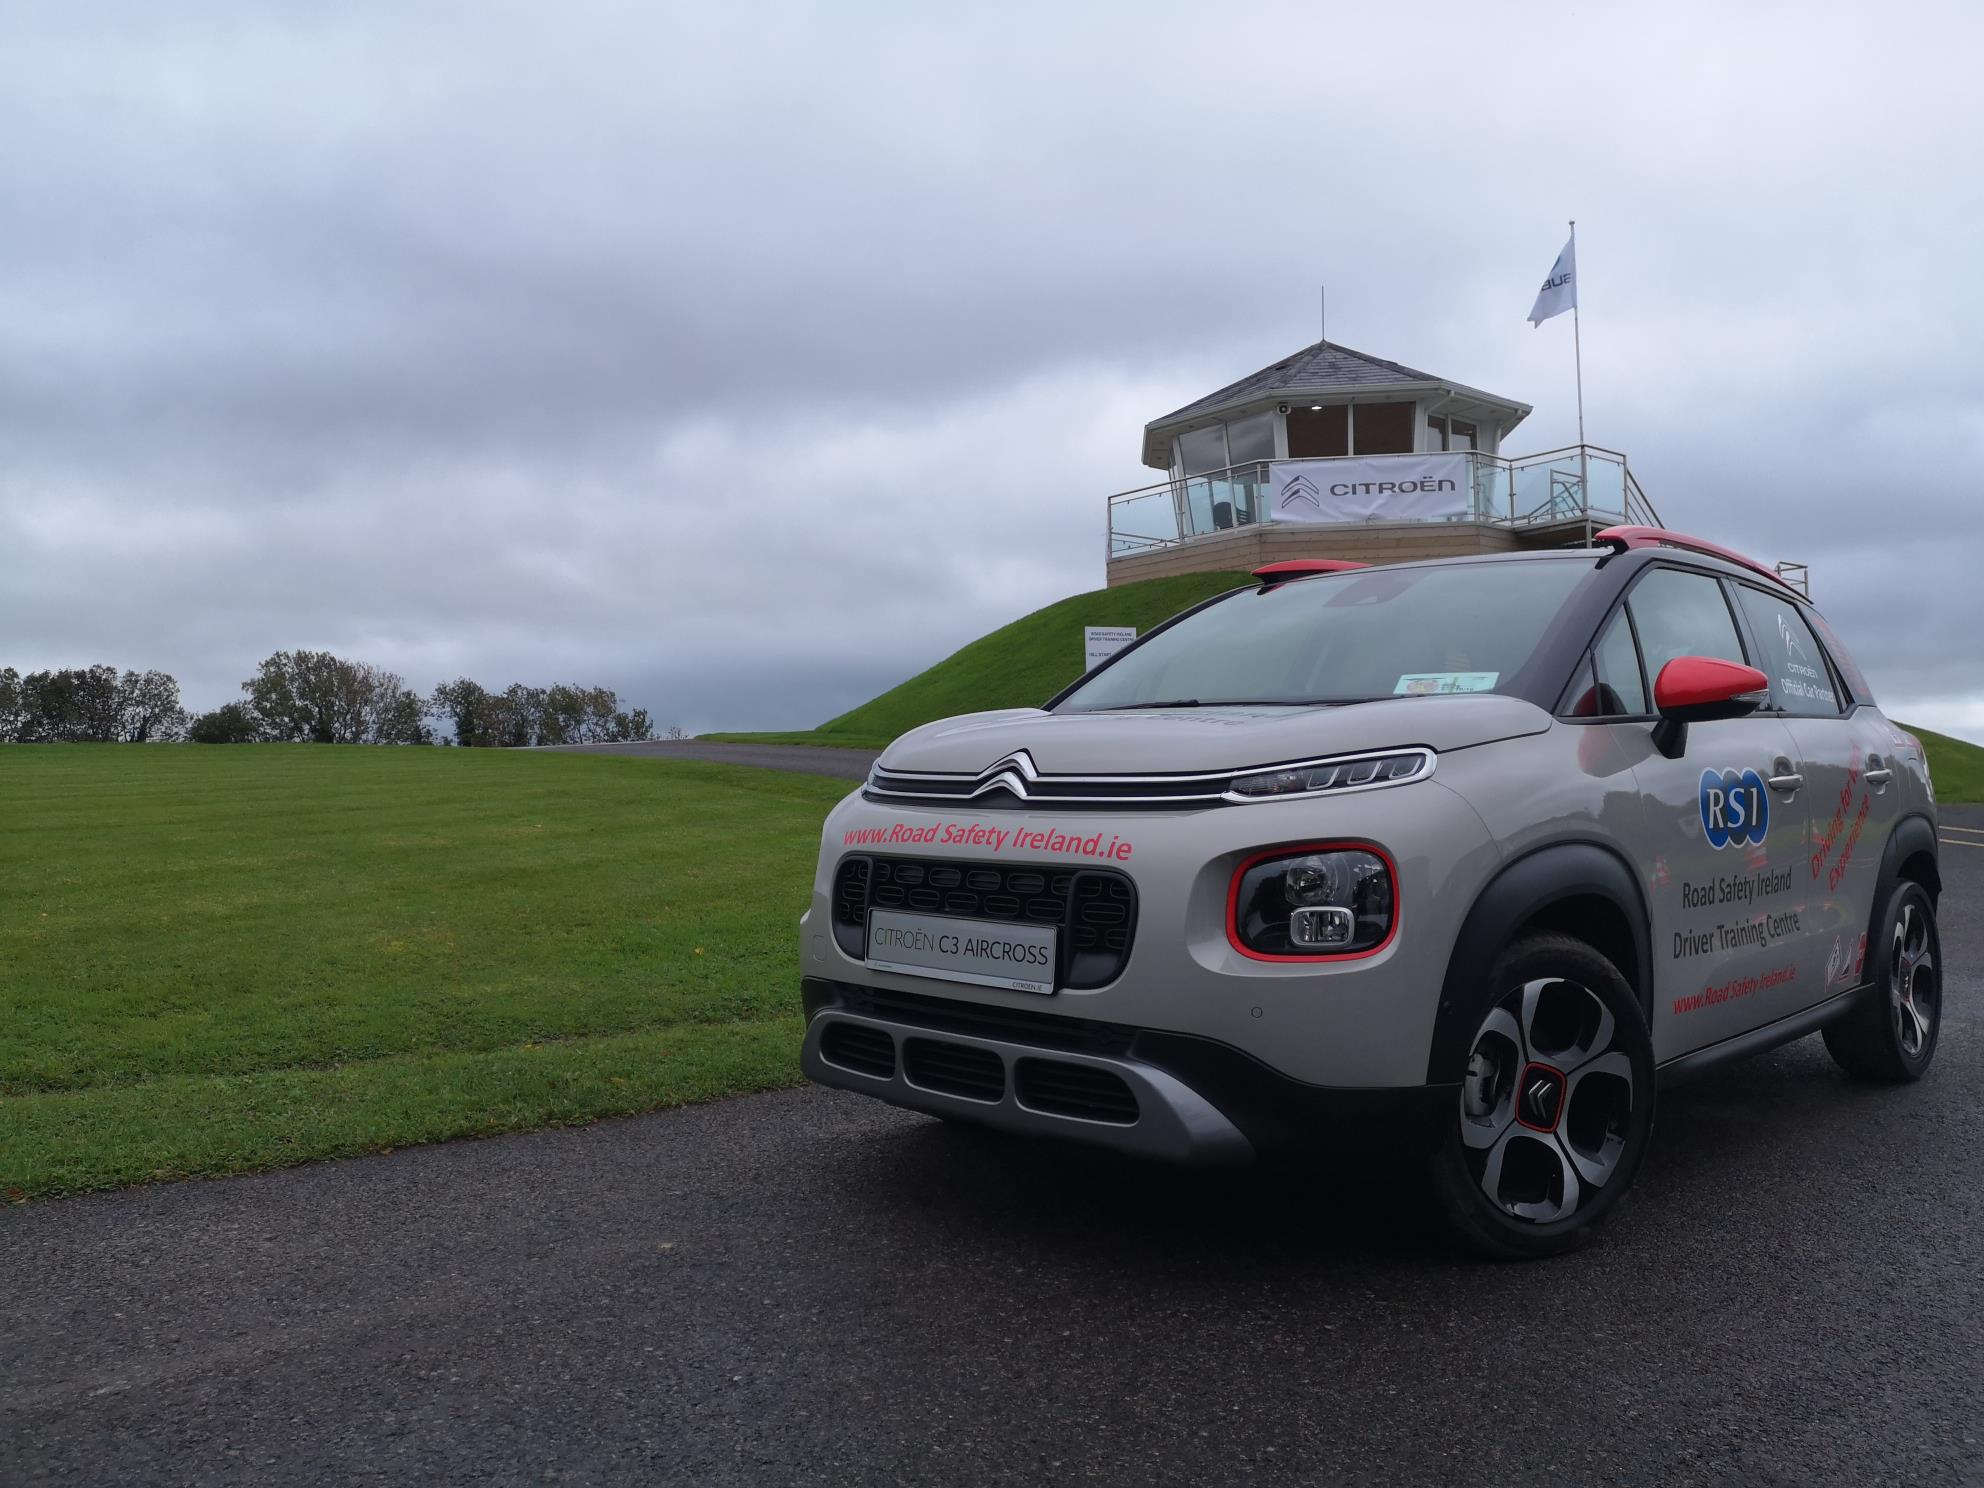 Citroen backs Road Safety Ireland's safe driving experience